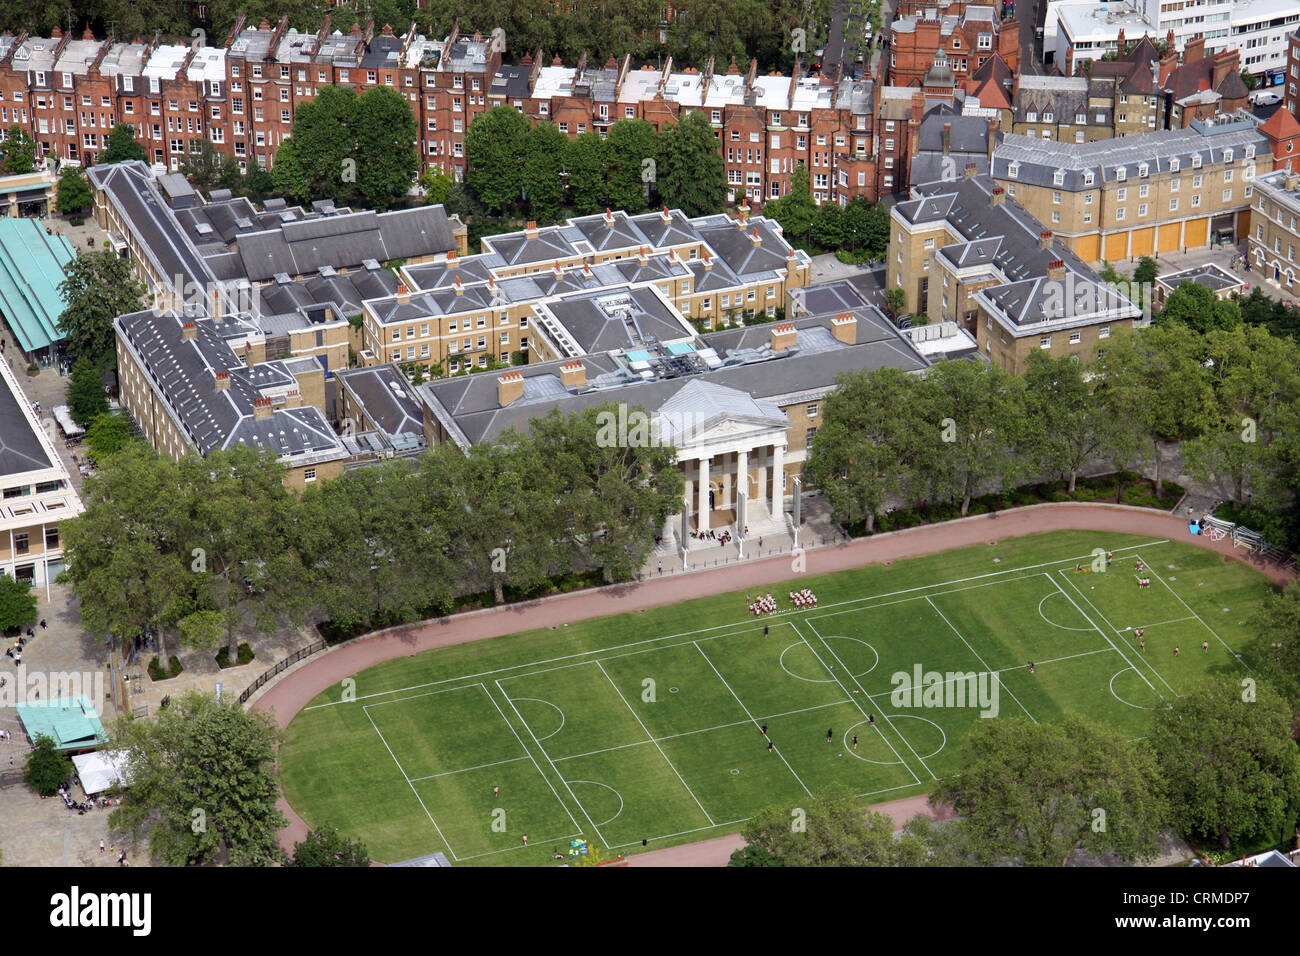 aerial view of the Saatchi Gallery, Lower Sloane Street, London SW3 - Stock Image